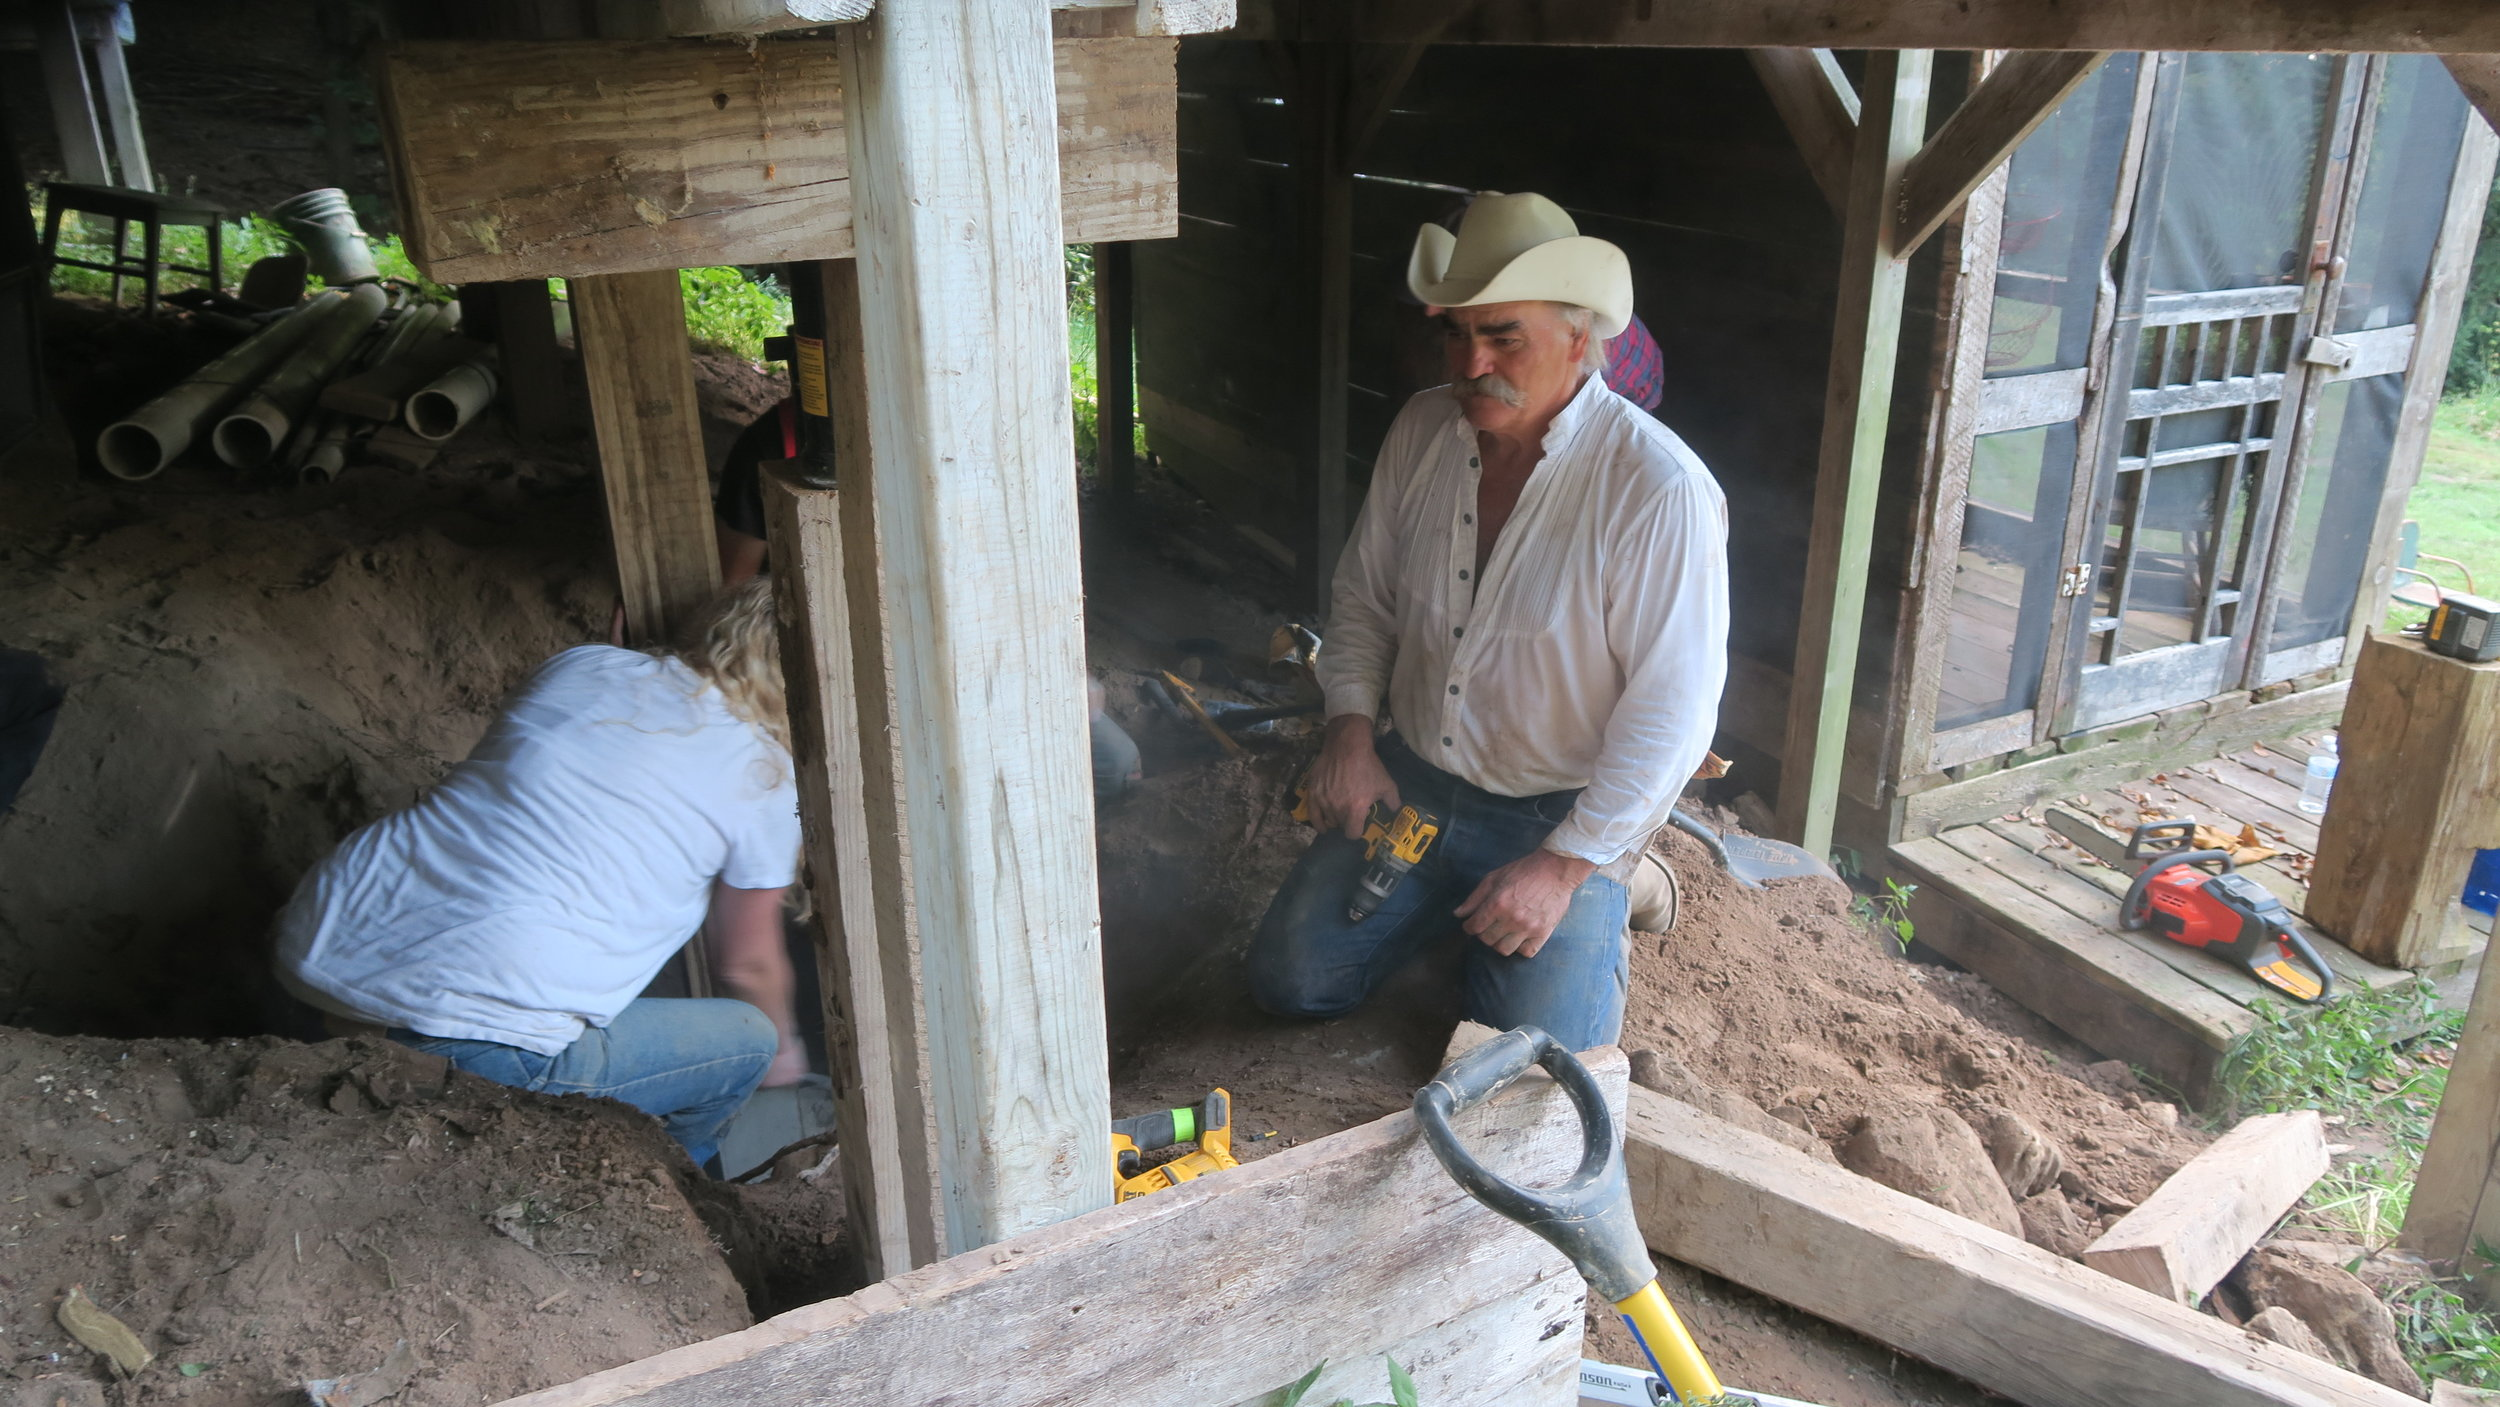 Marty Raney right, helps shore up support beams under the house. Photo by Natalie Munio